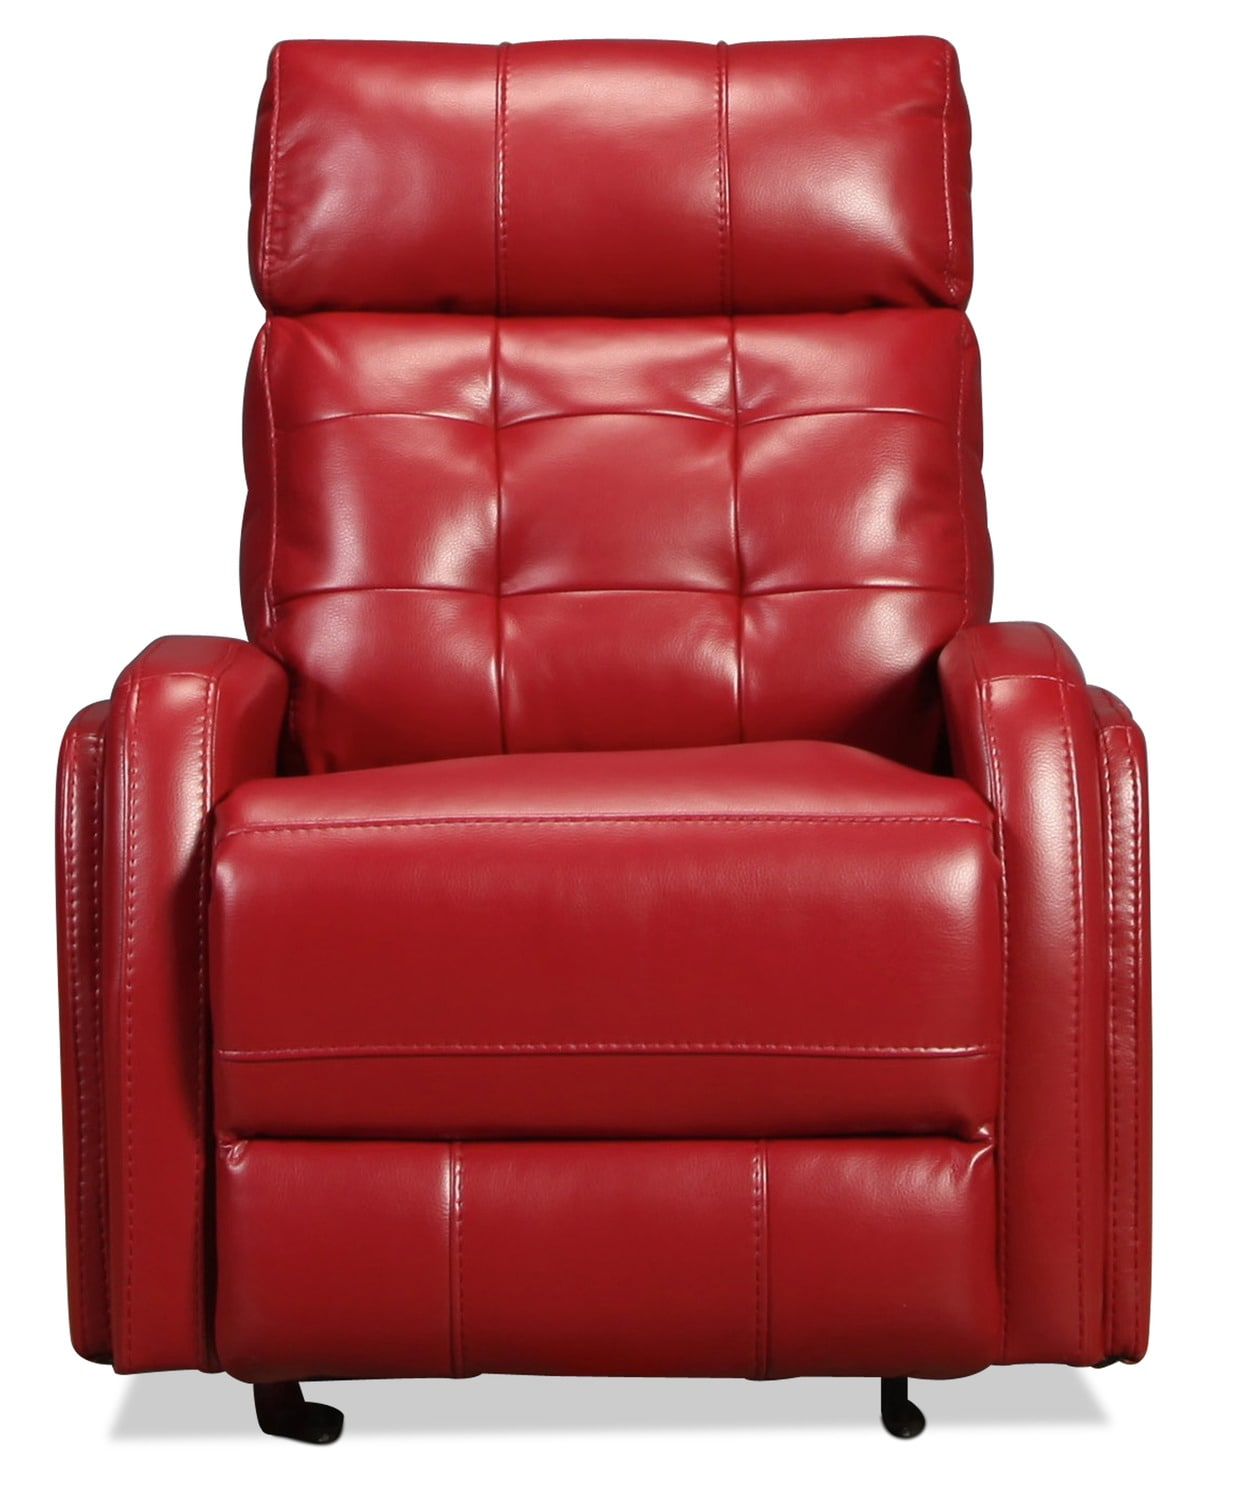 Mace Power Recliner - Red